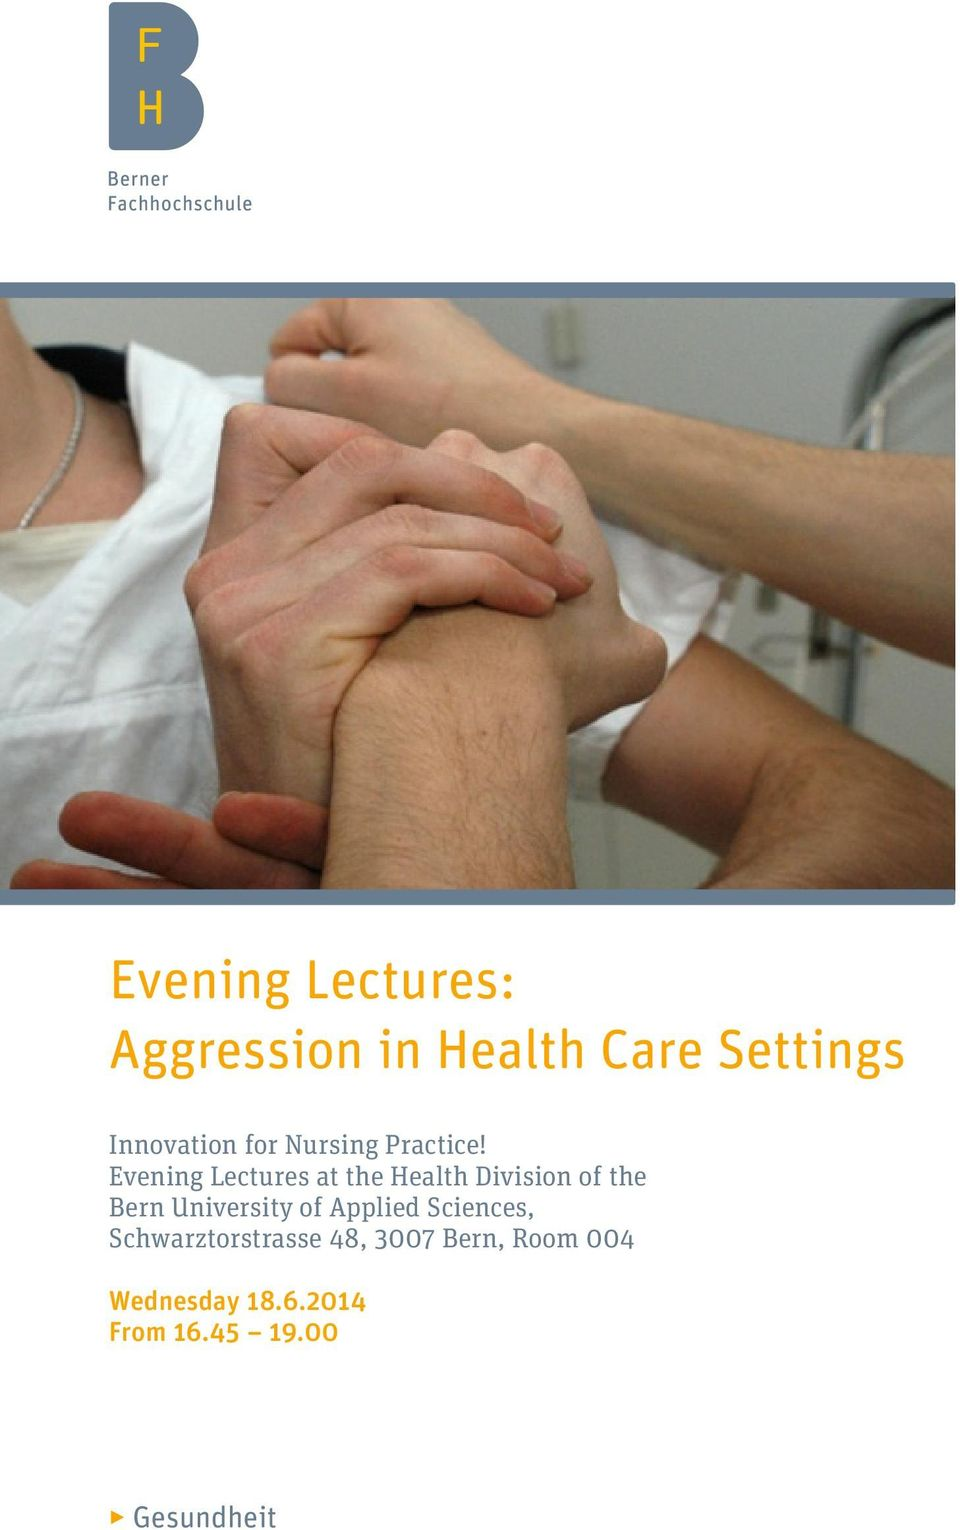 Evening Lectures at the Health Division of the Bern University